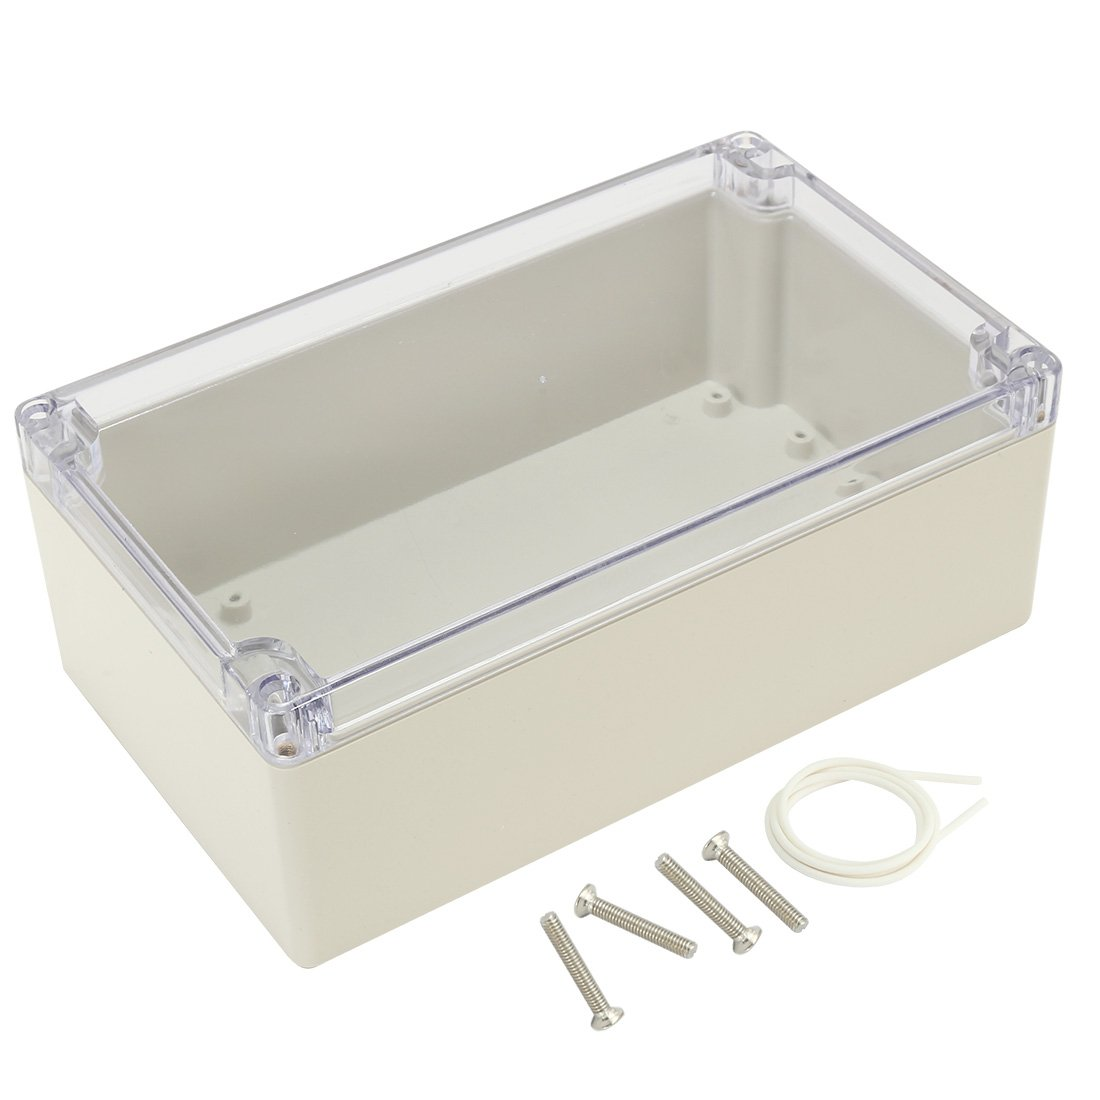 uxcell 7.9''x4.7''x2.9''(200mmx120mmx75mm) ABS Junction Box Universal Project Enclosure w PC Clear Transparent Cover